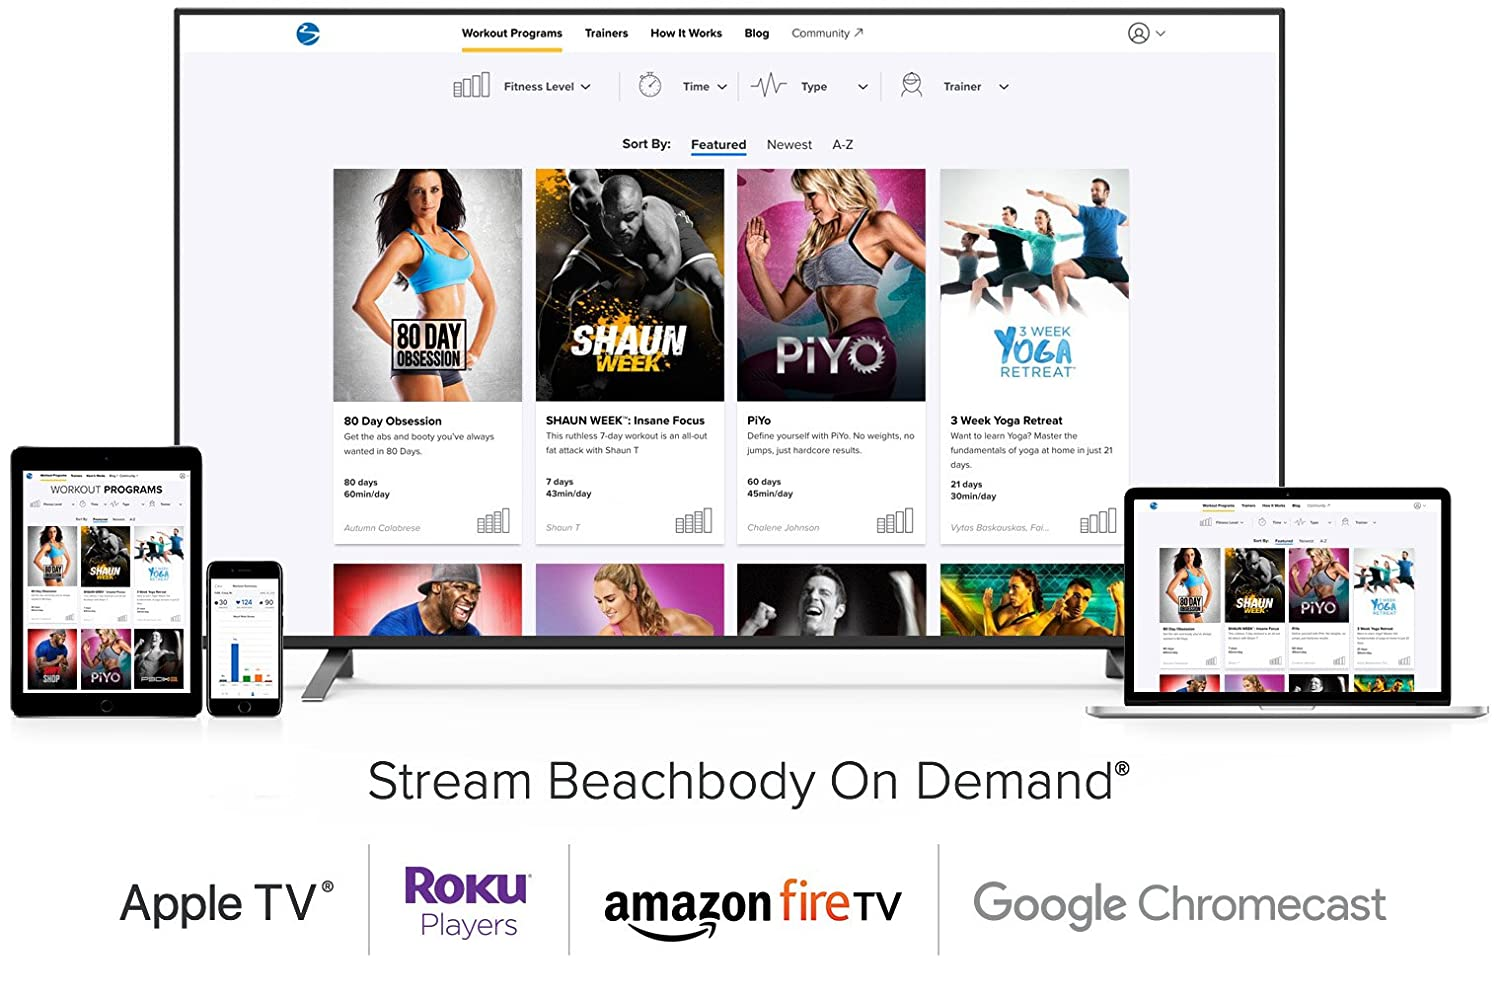 e5b149974423 Amazon.com: Beachbody on Demand 12 Month Membership – Stream over 700  workouts including 80 Day Obsession, P90X, 3 Week Yoga Retreat, 21 Day Fix,  INSANITY, ...